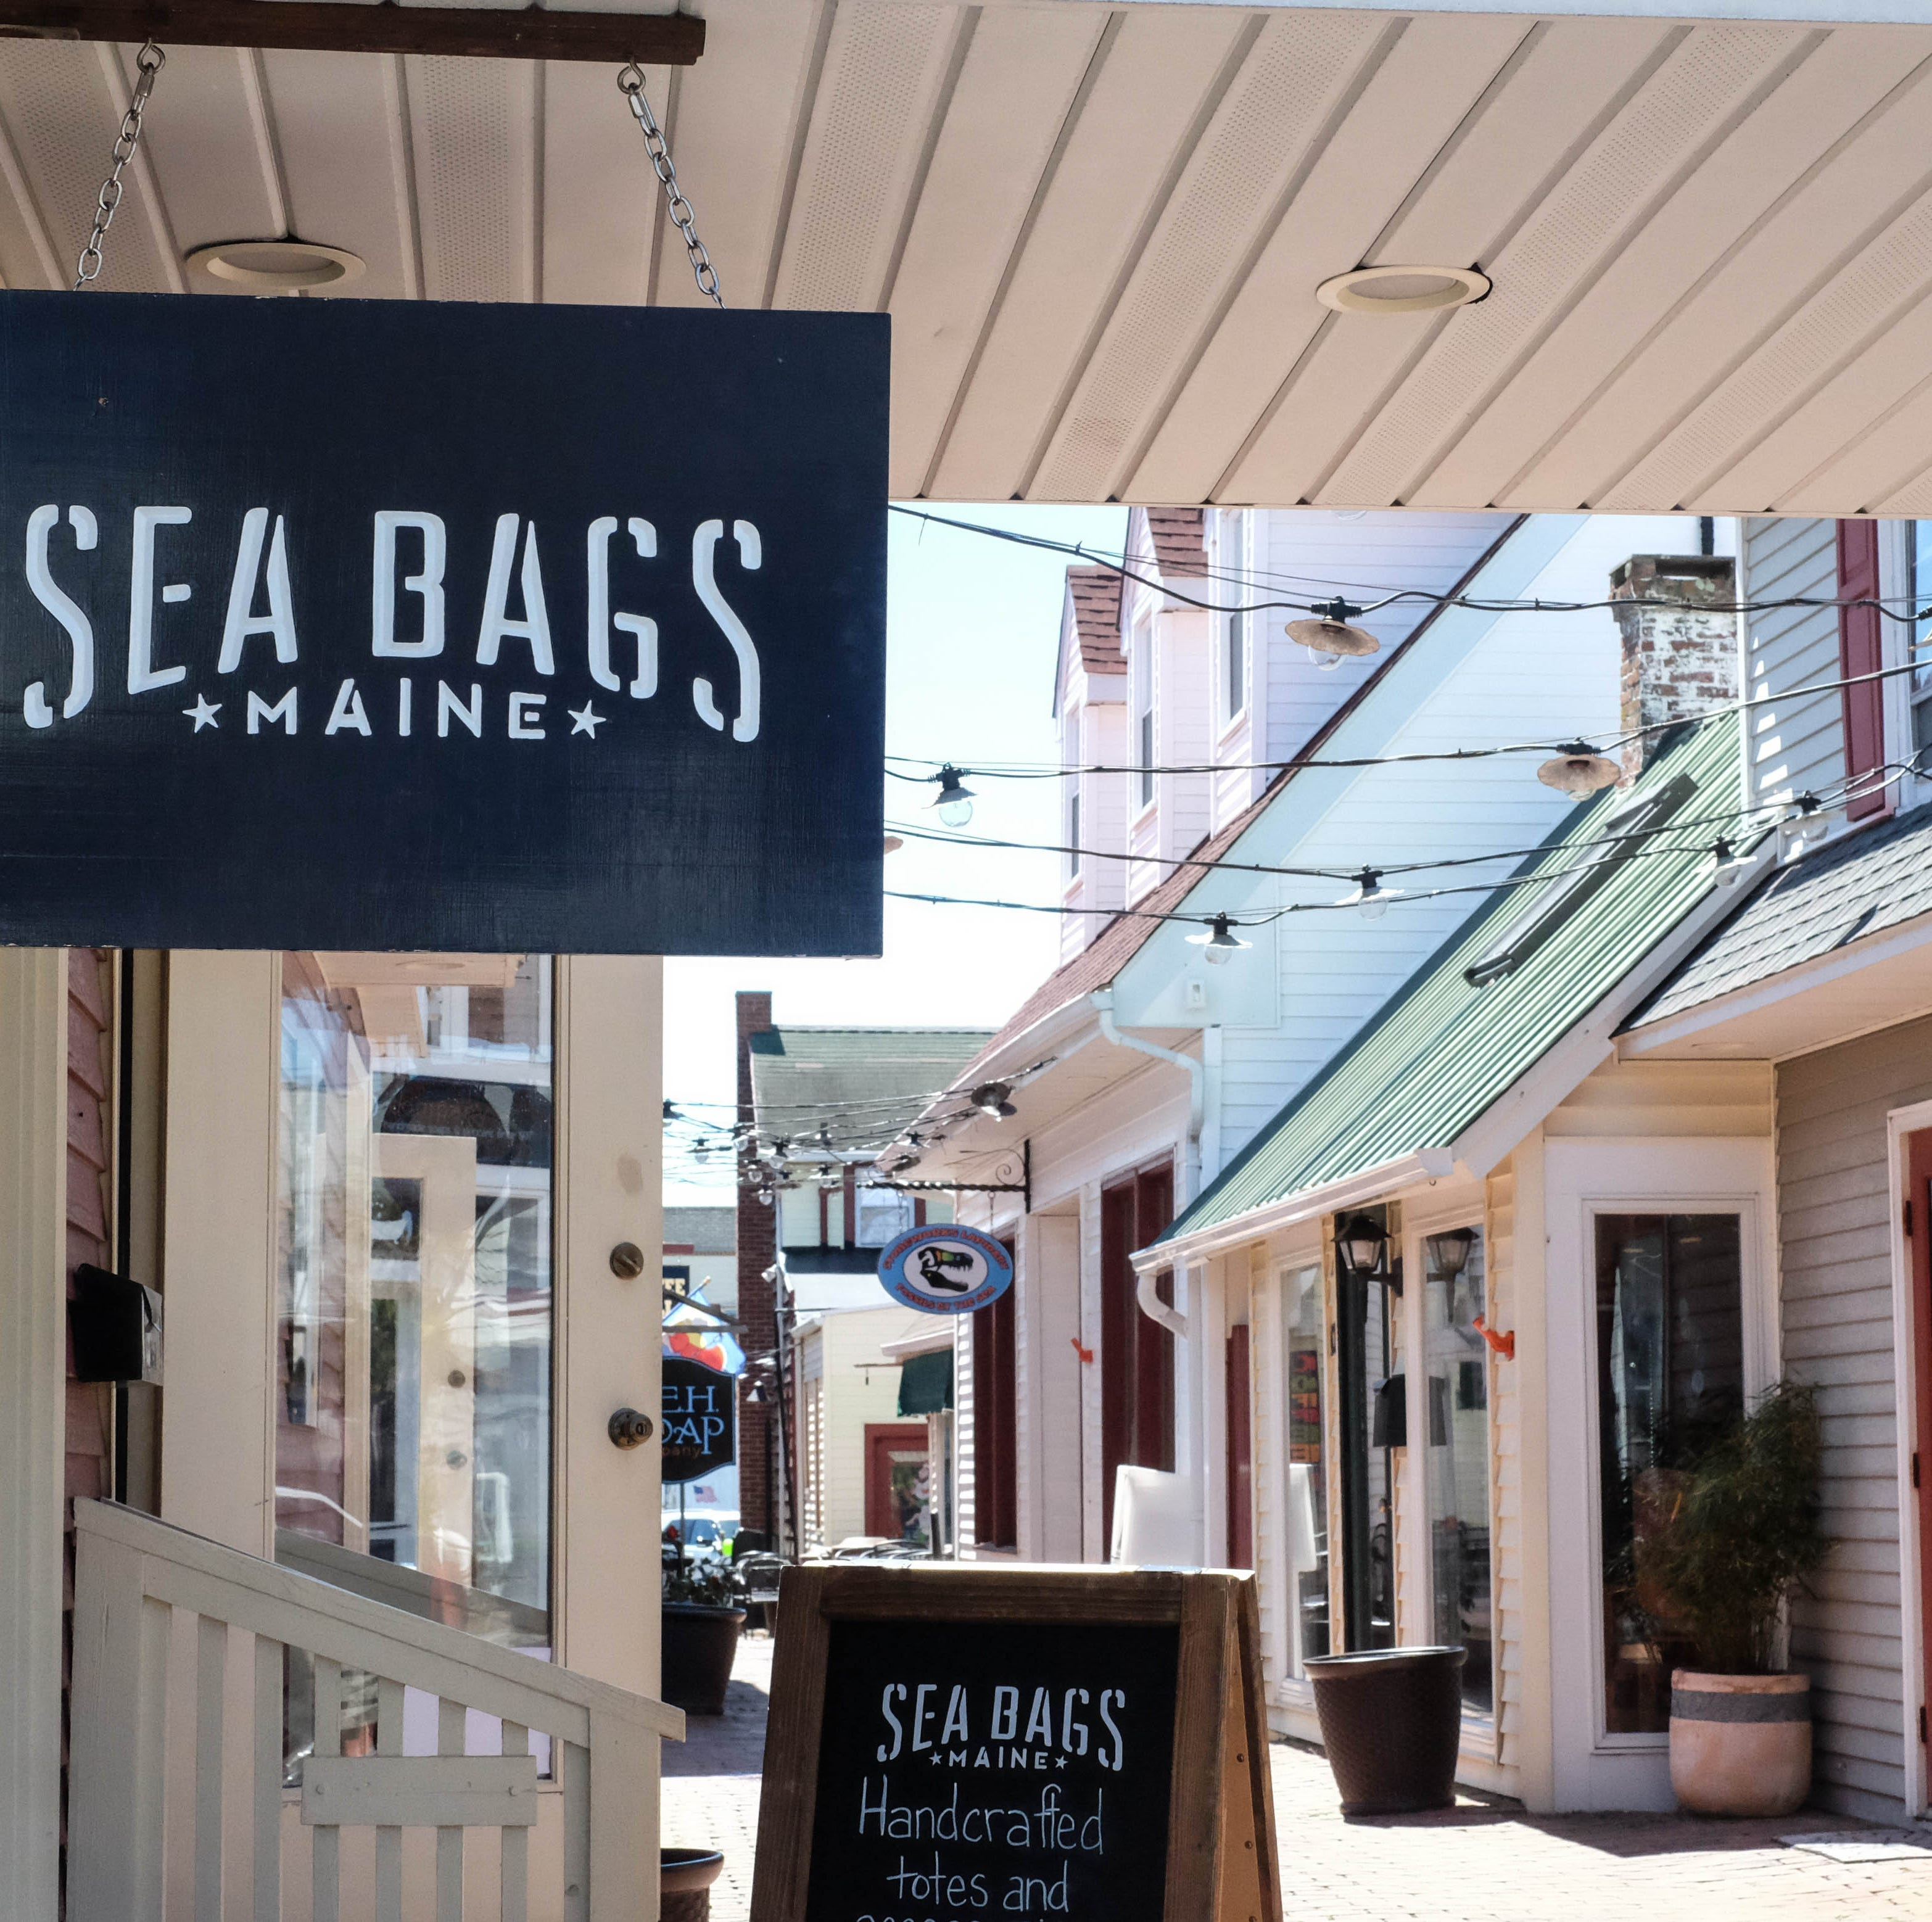 New shop in Rehoboth turns old sails into handcrafted totes, bags